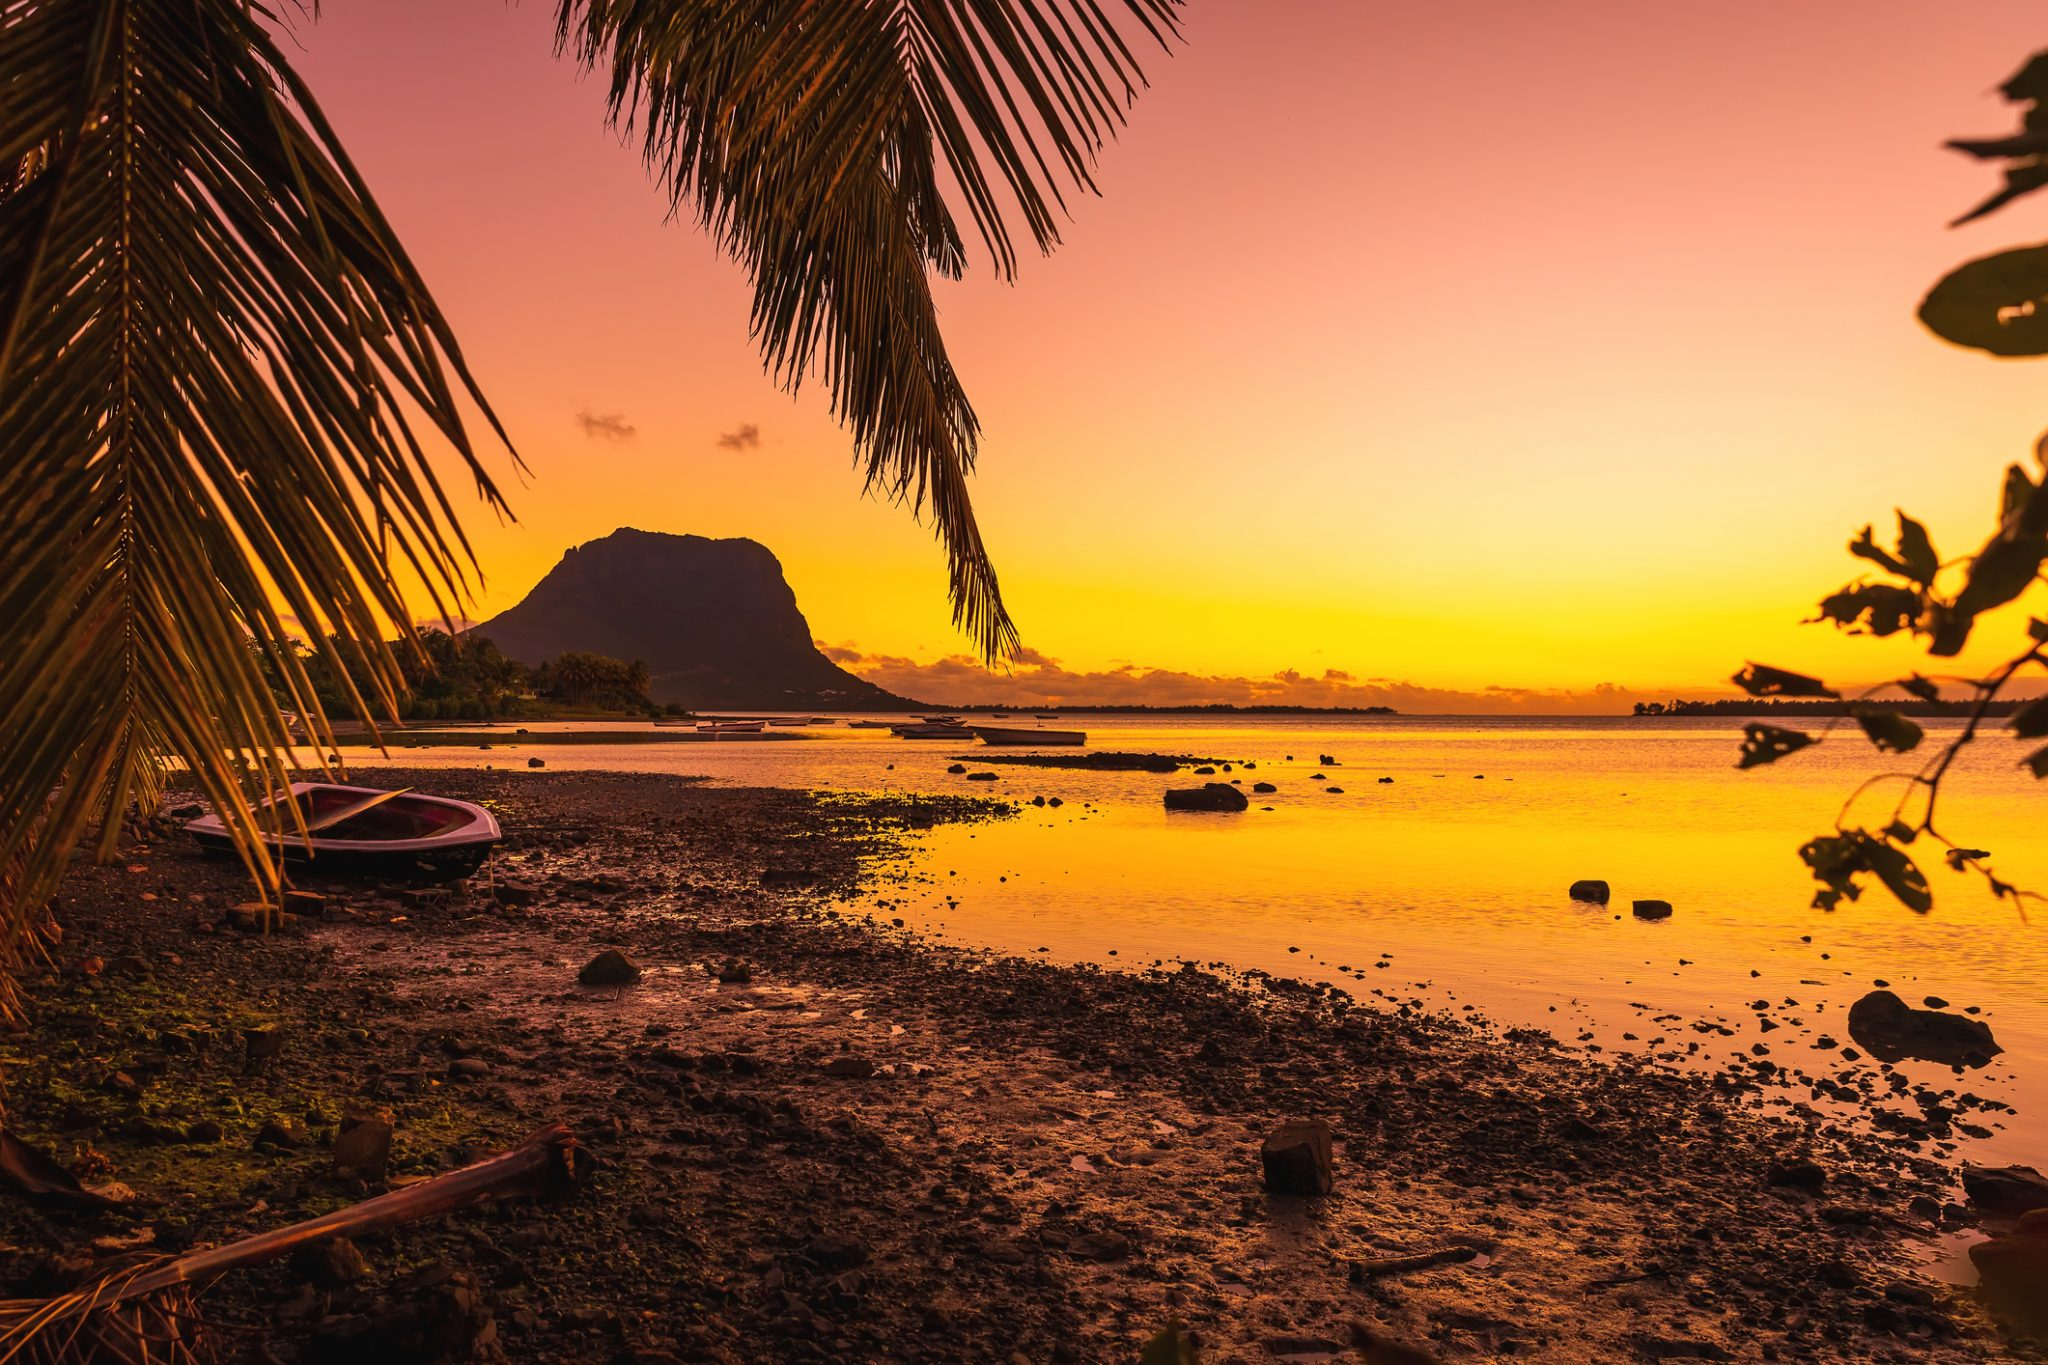 Fishing boats in a quiet ocean at sunset time. Le Morn mountain in Mauritius.